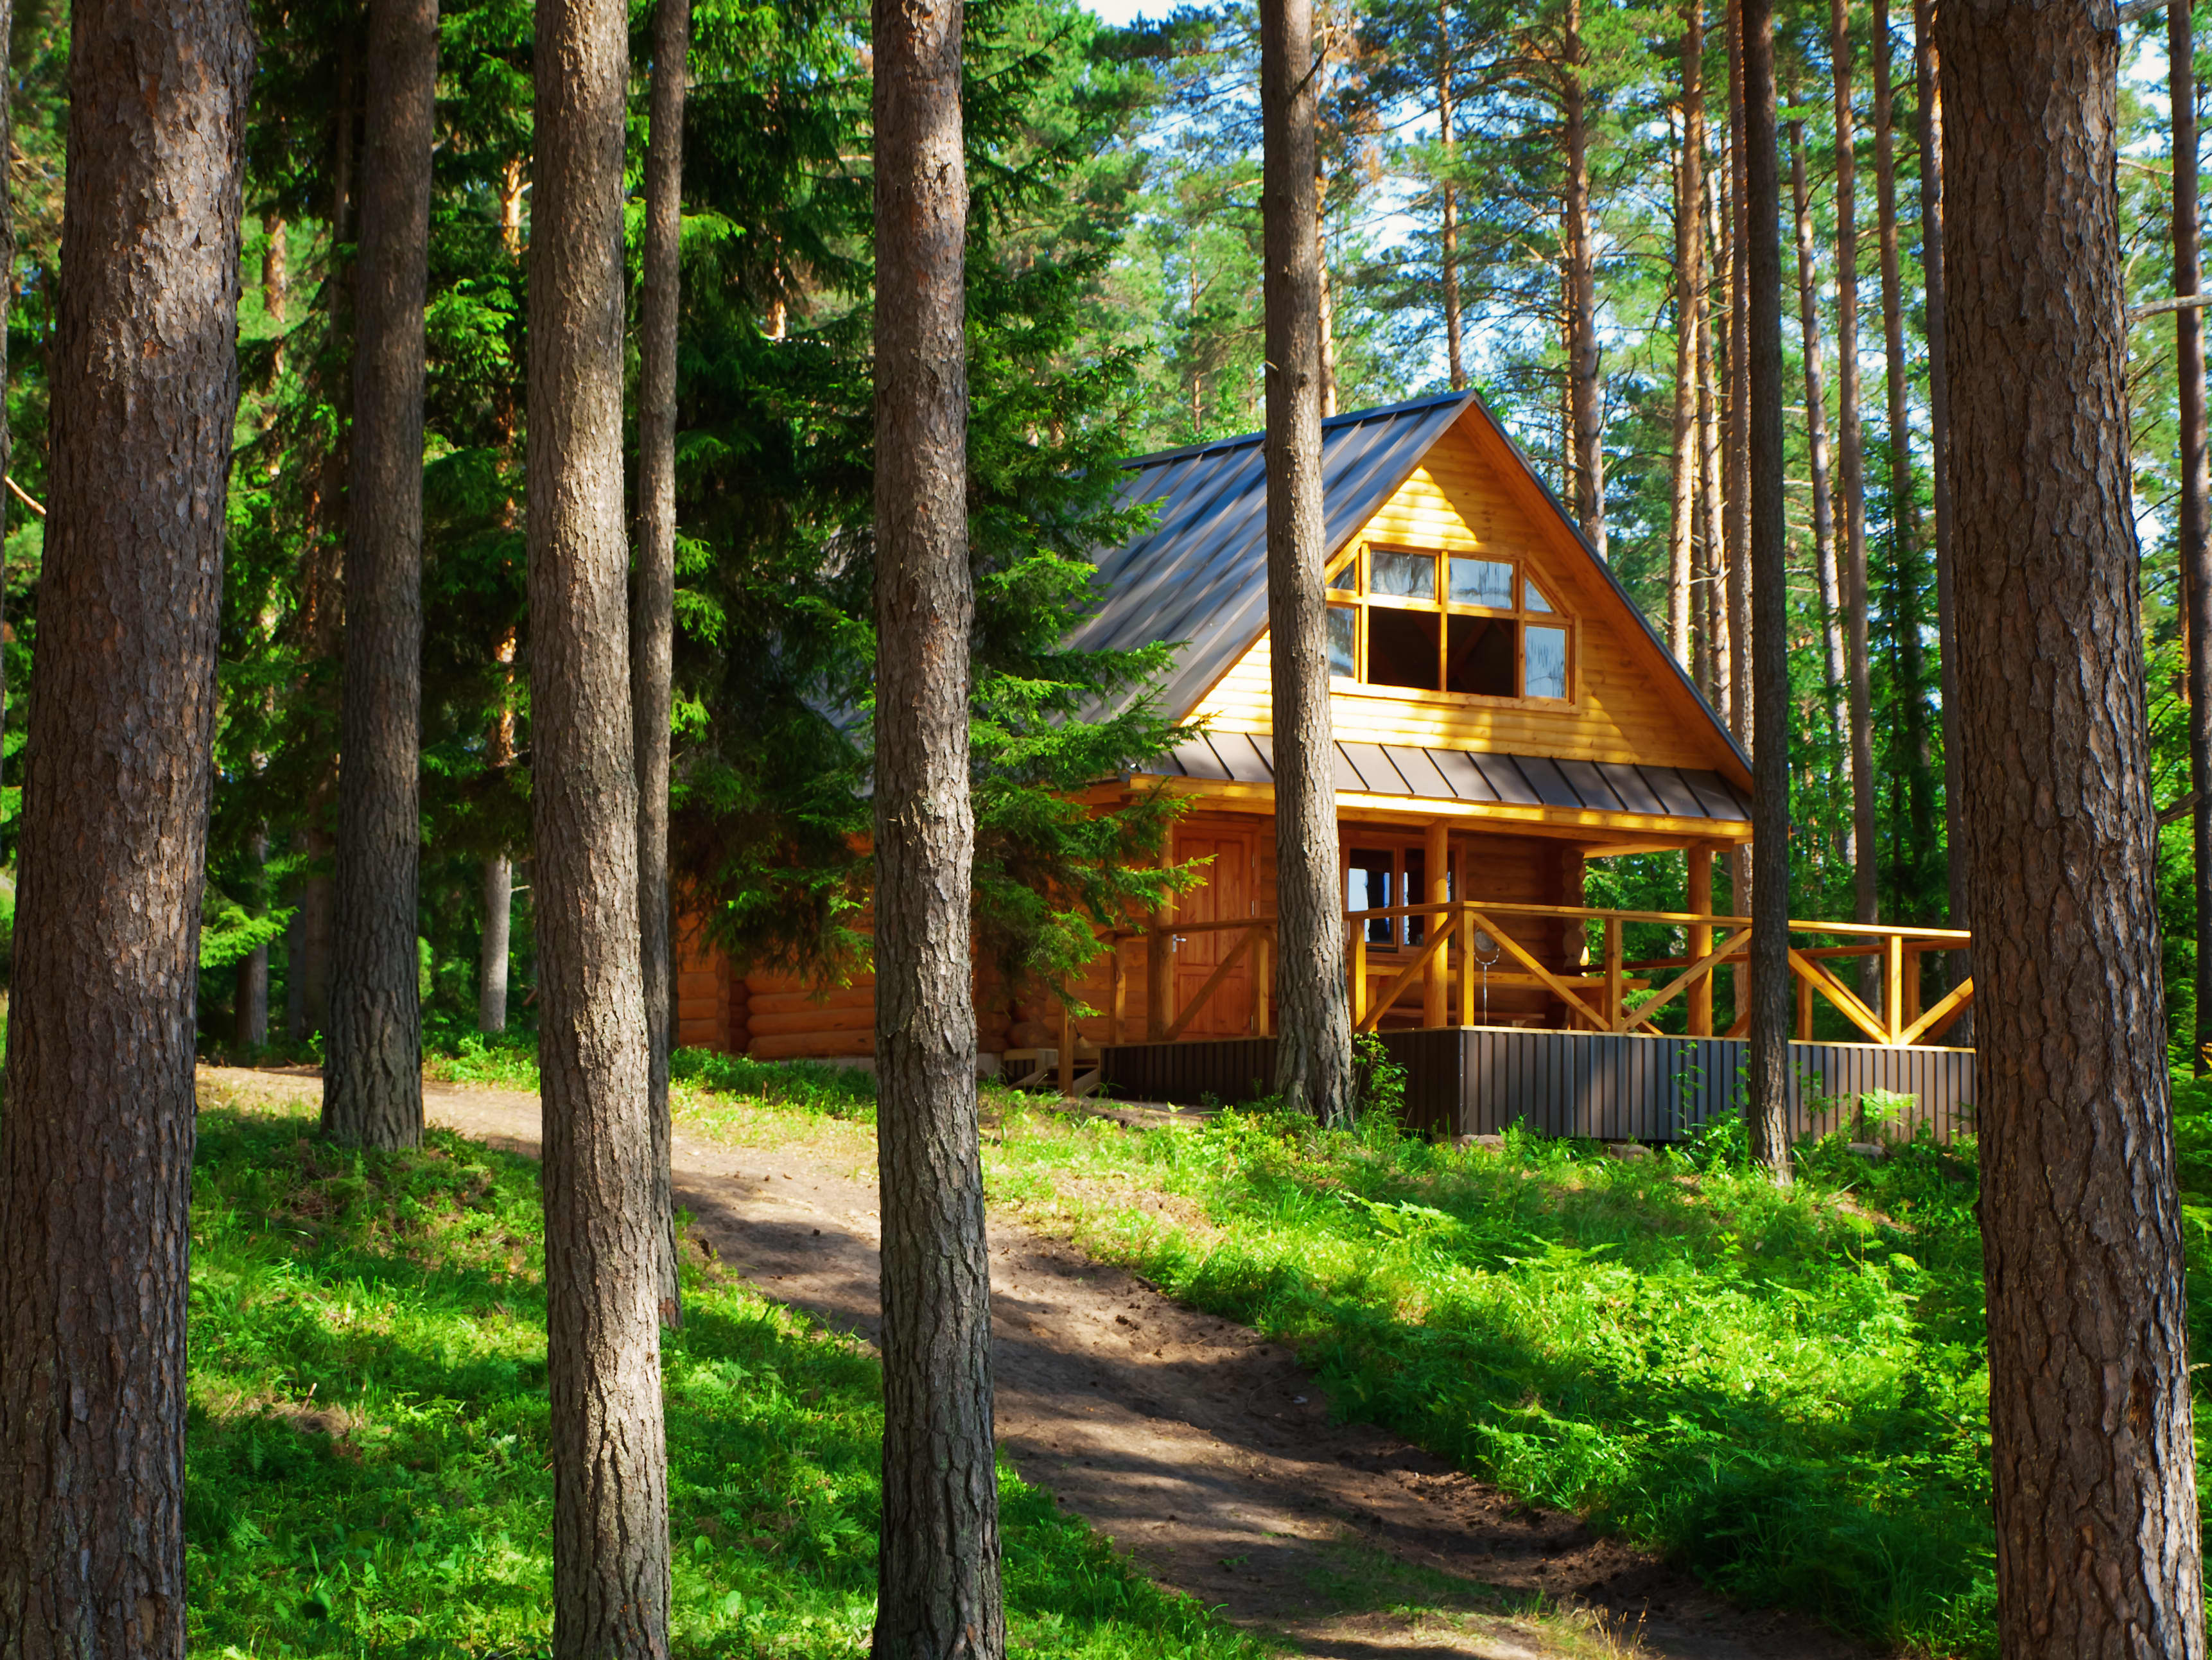 Explosive demand for vacation rentals has made property managers a hot commodity